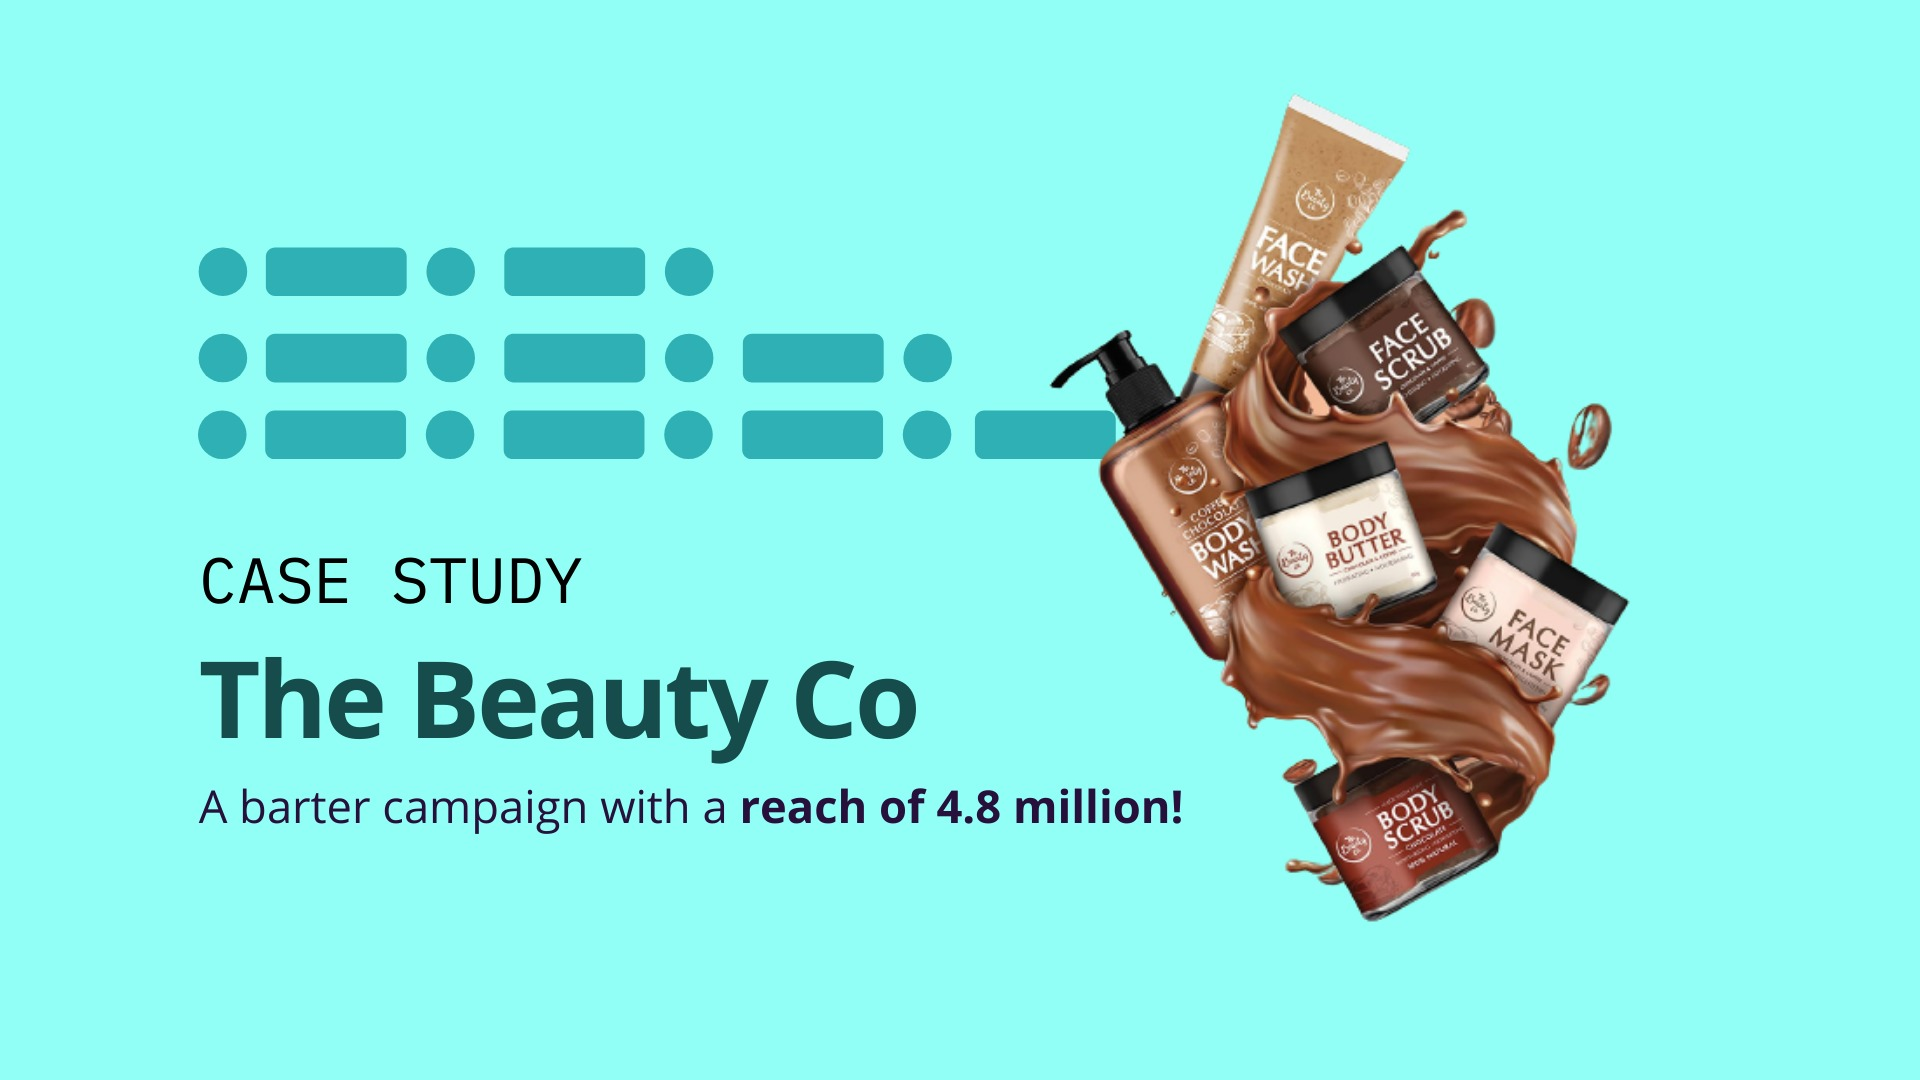 How The Beauty Co. reached 4.8M people with a barter influencer campaign image